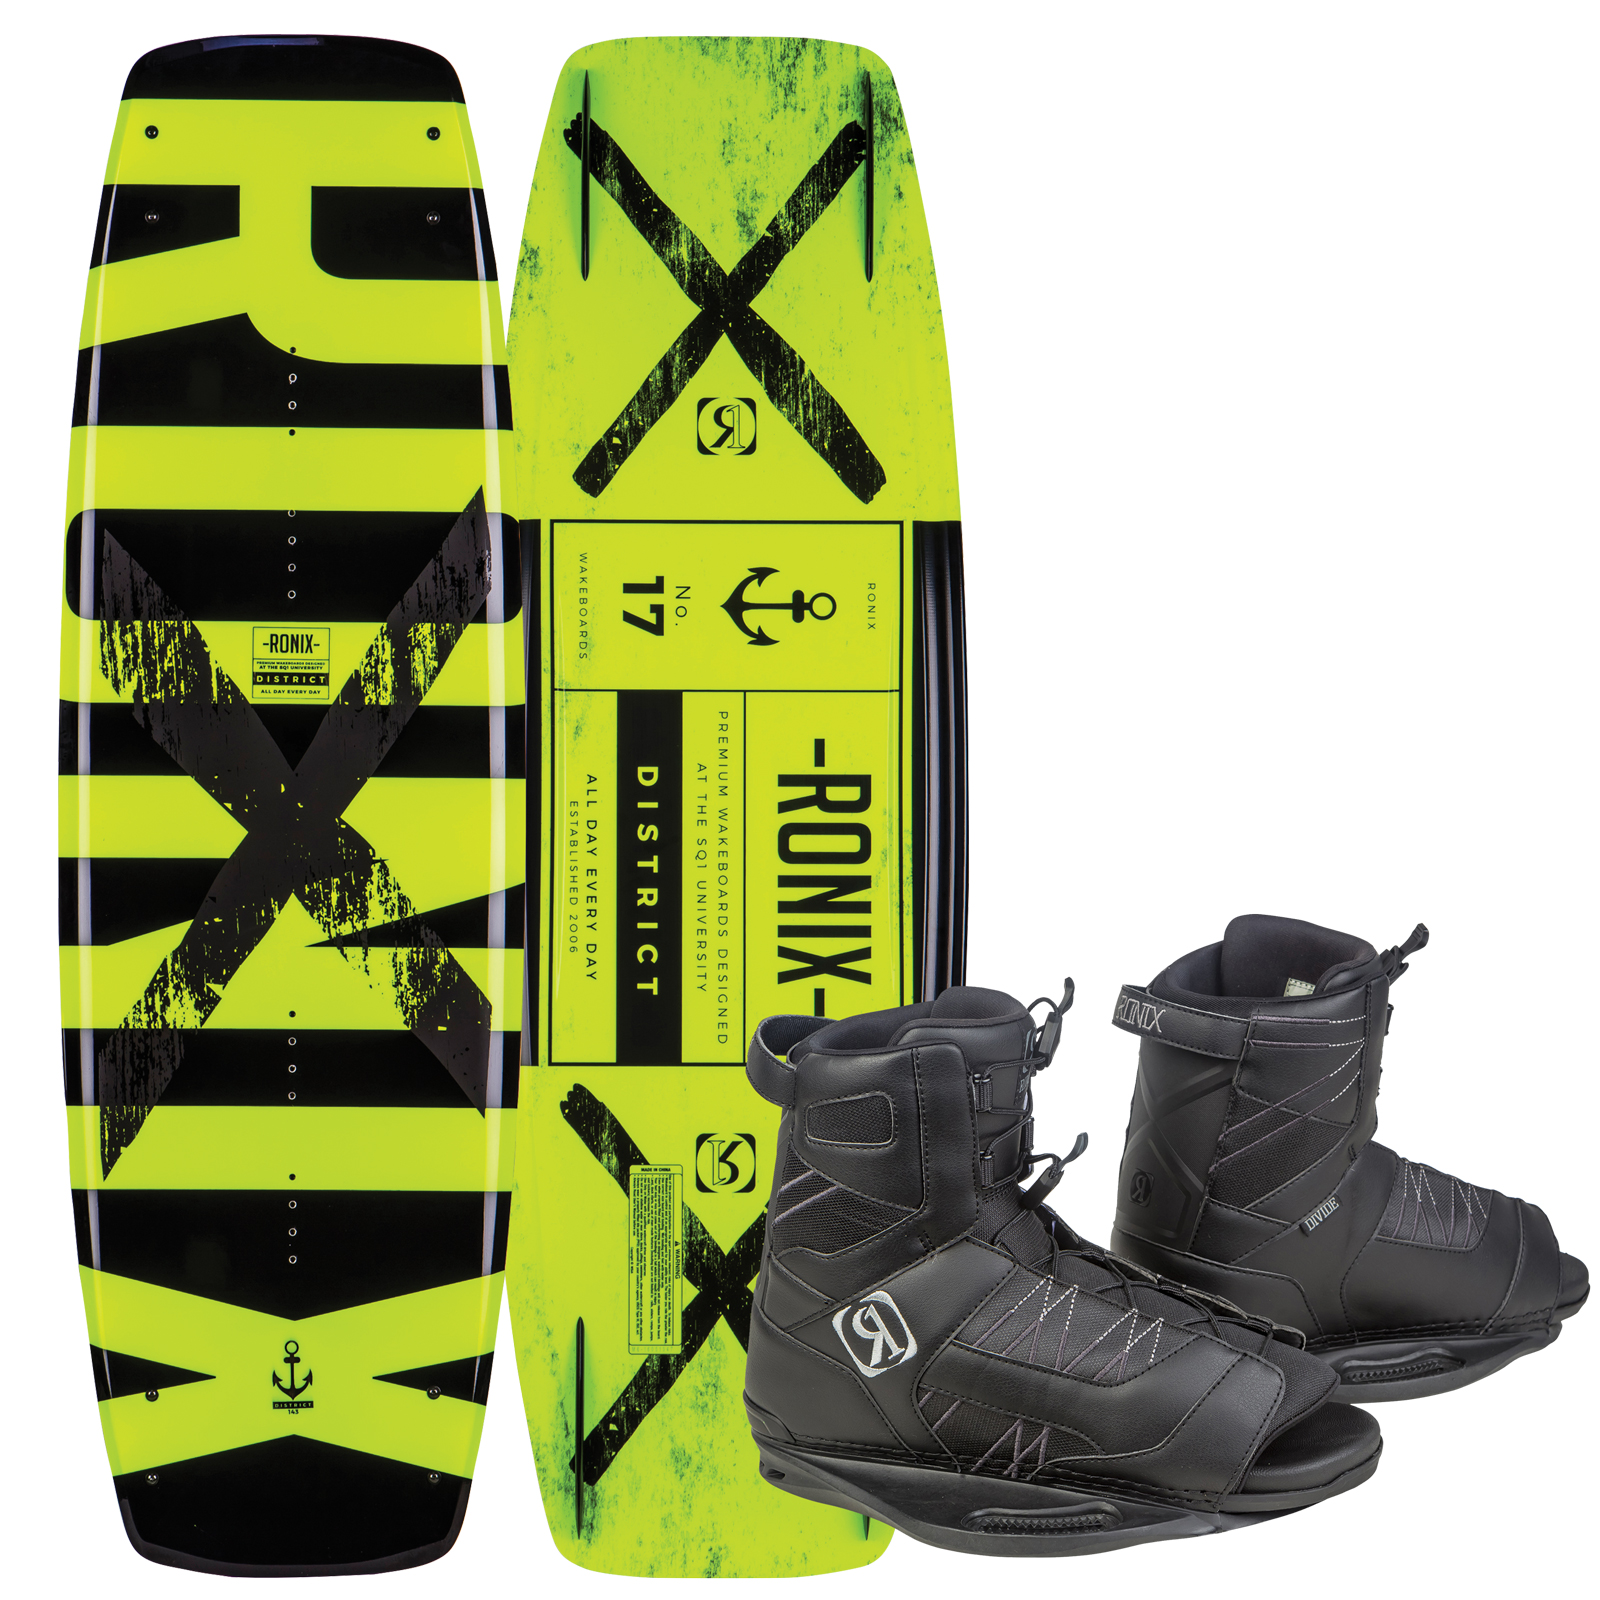 DISTRICT 129W/ DIVIDE PACKAGE RONIX 2017